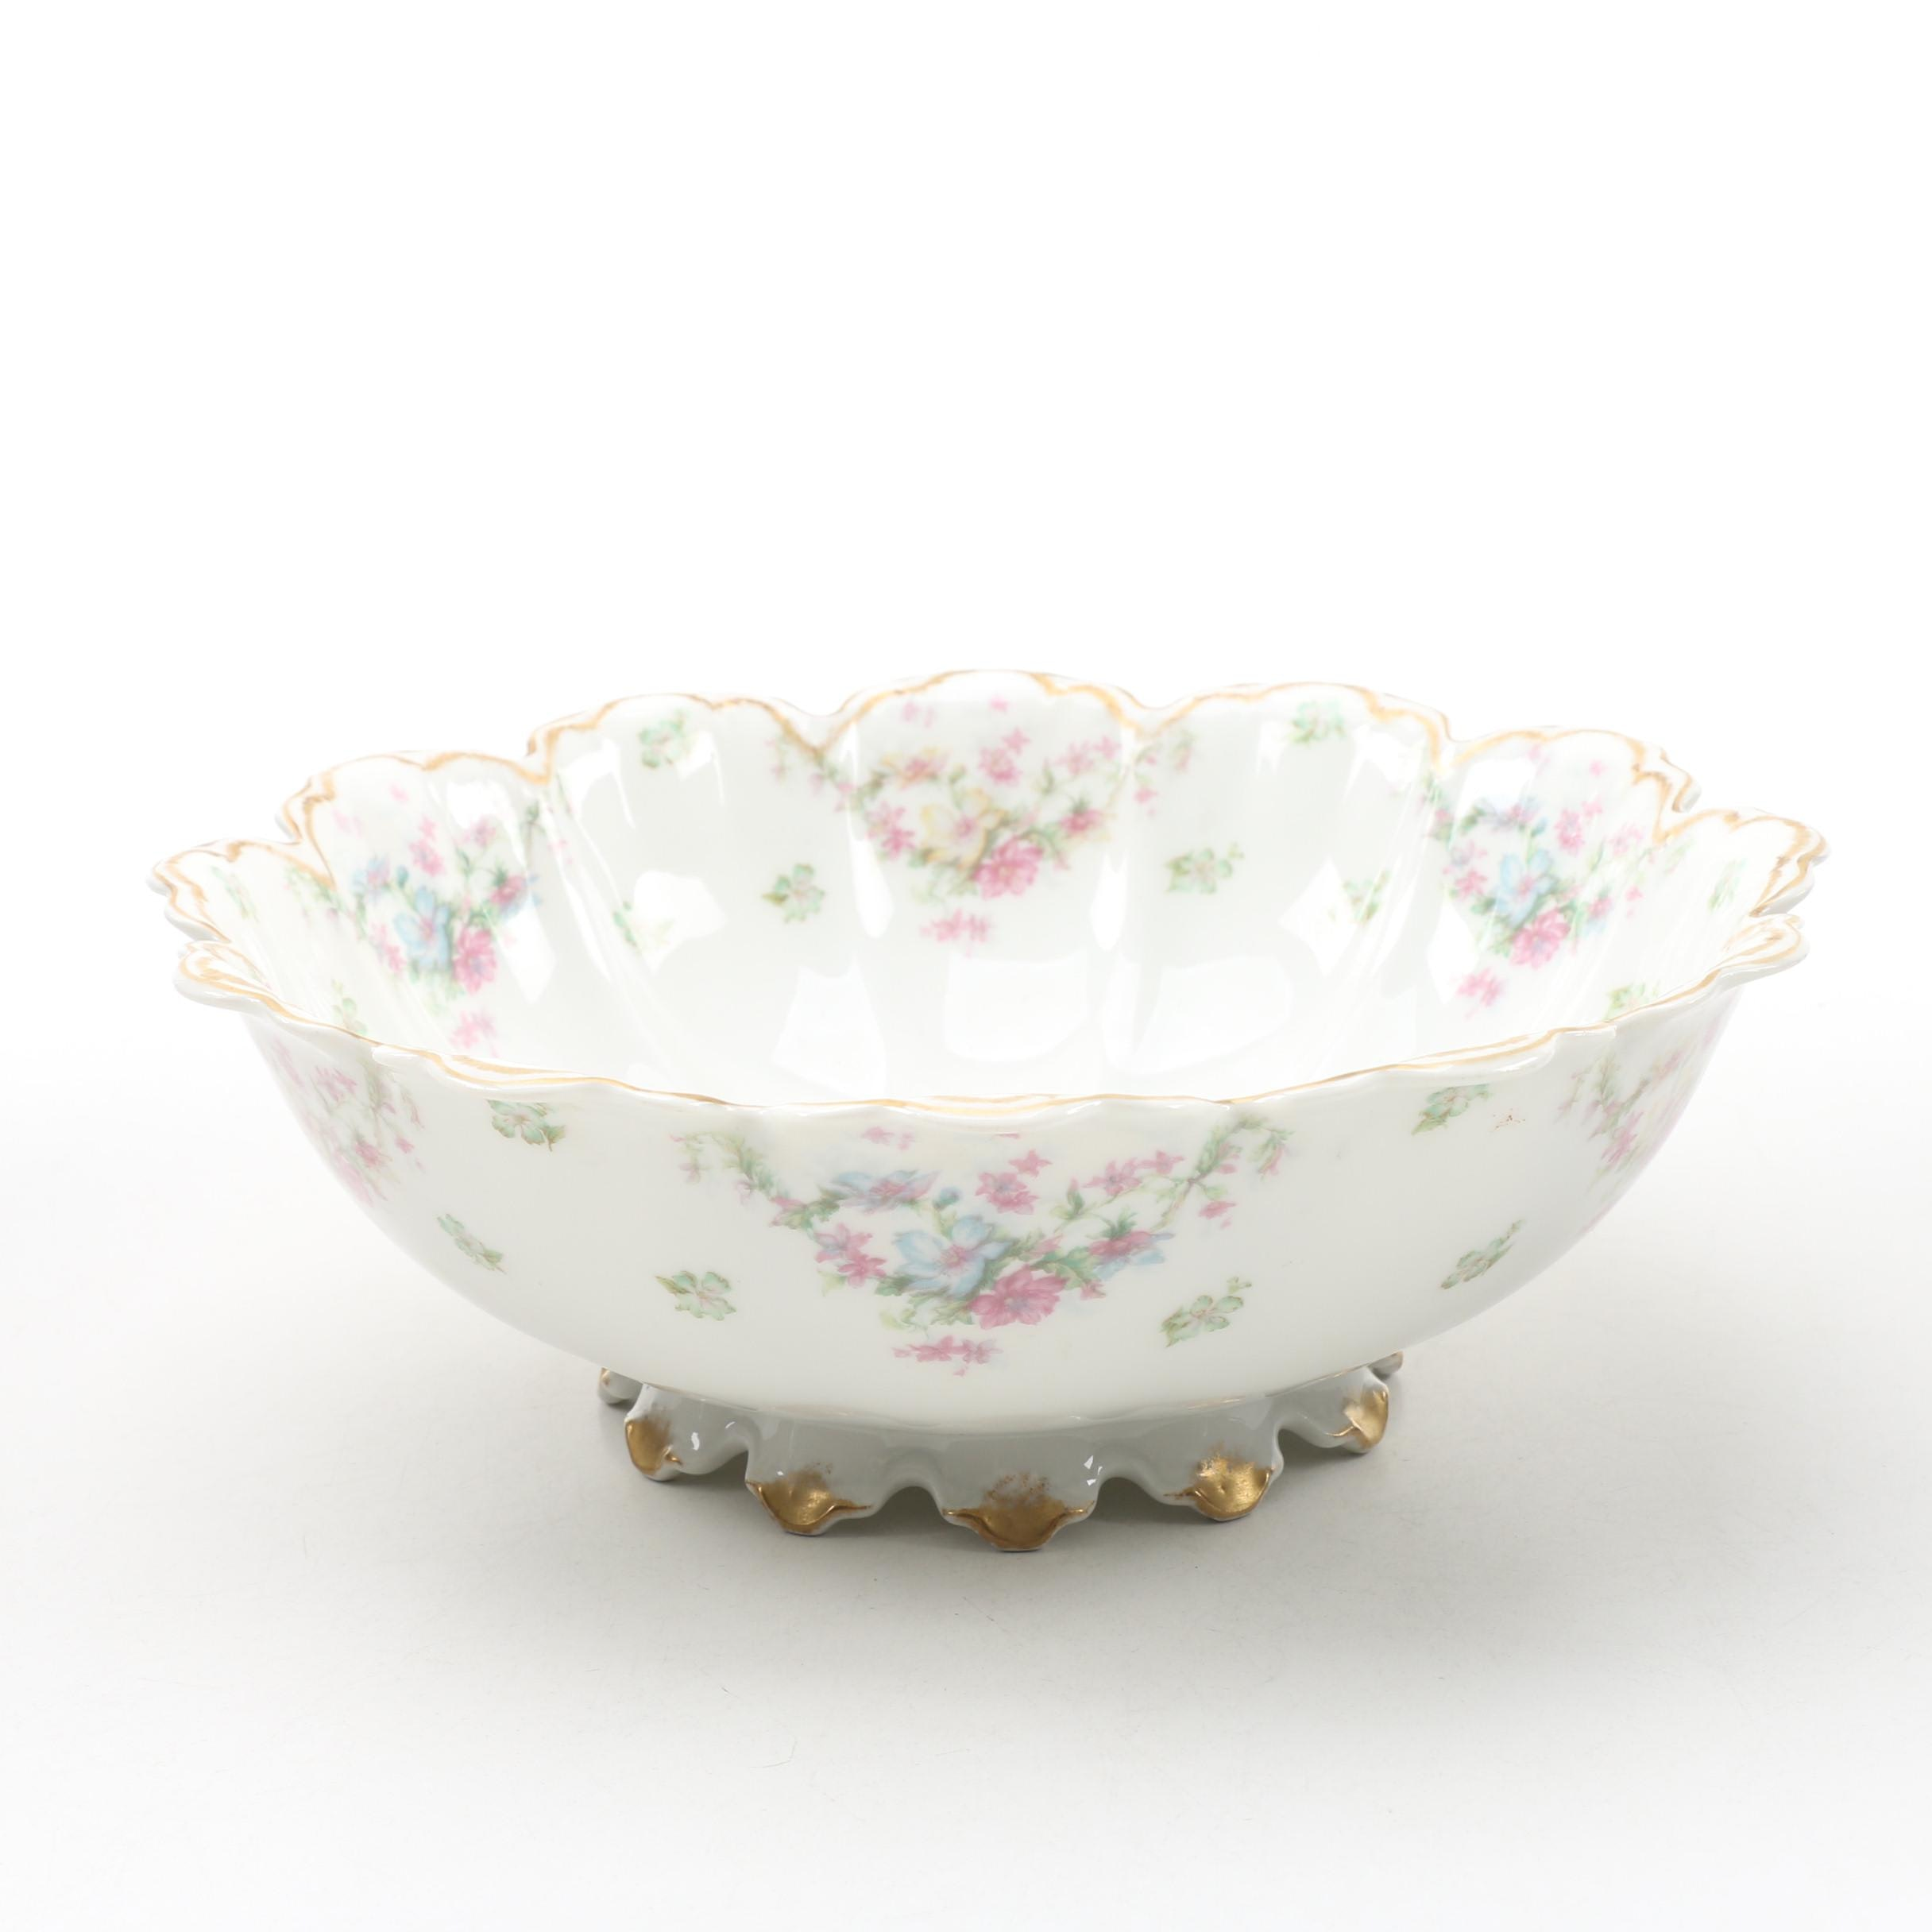 Haviland Limoges Porcelain Footed Bowl